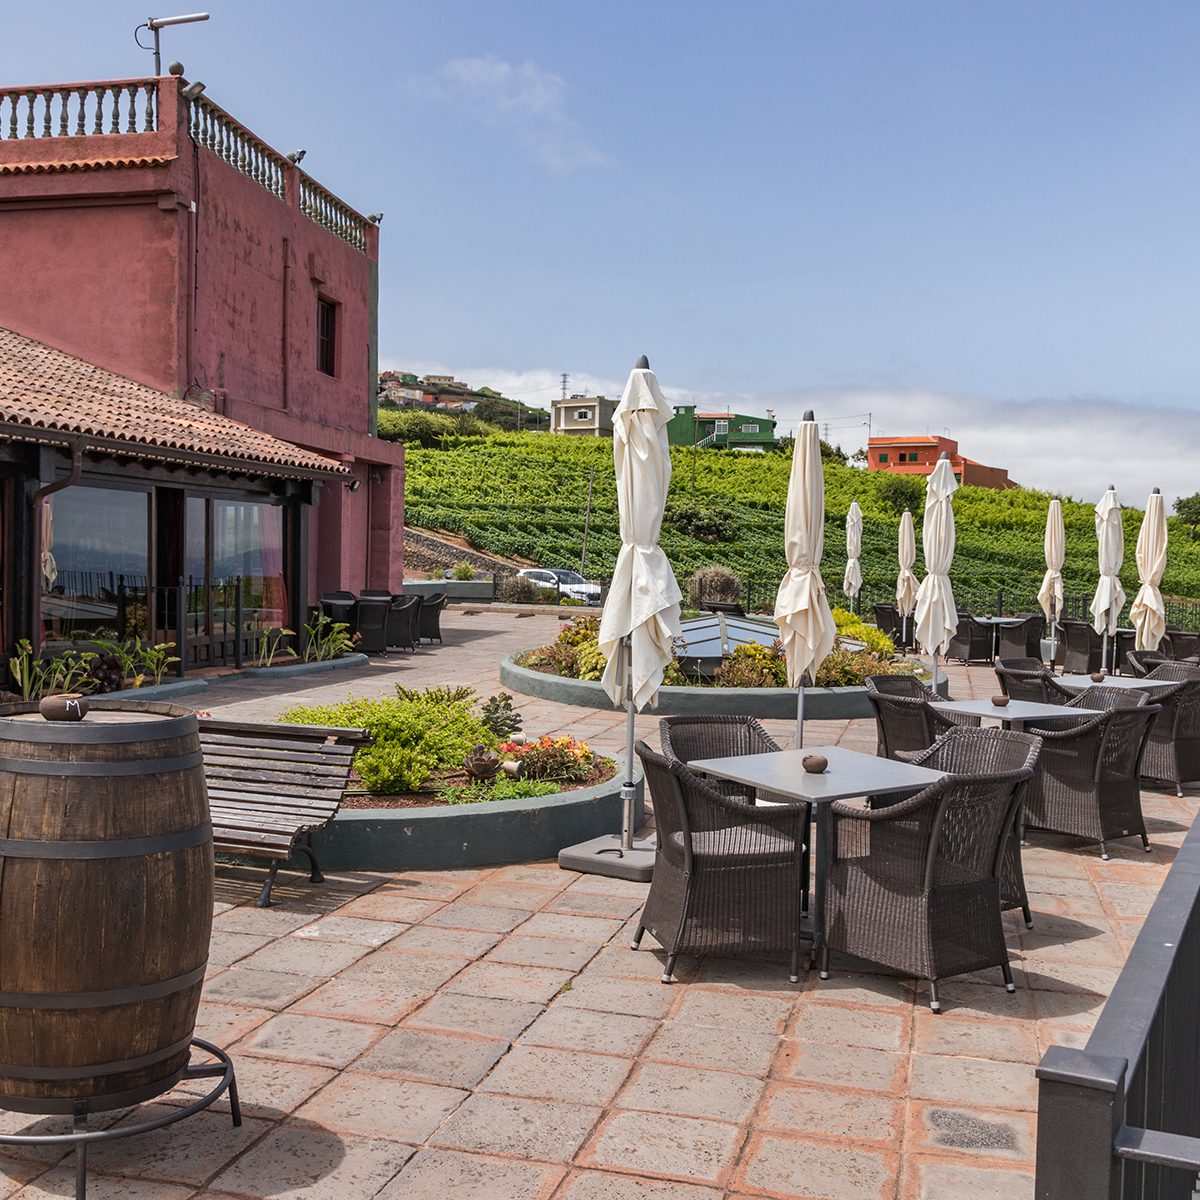 View of wine cellar and vineyards in the north of Tenerife, Canary Islands Spain. Harvest concept